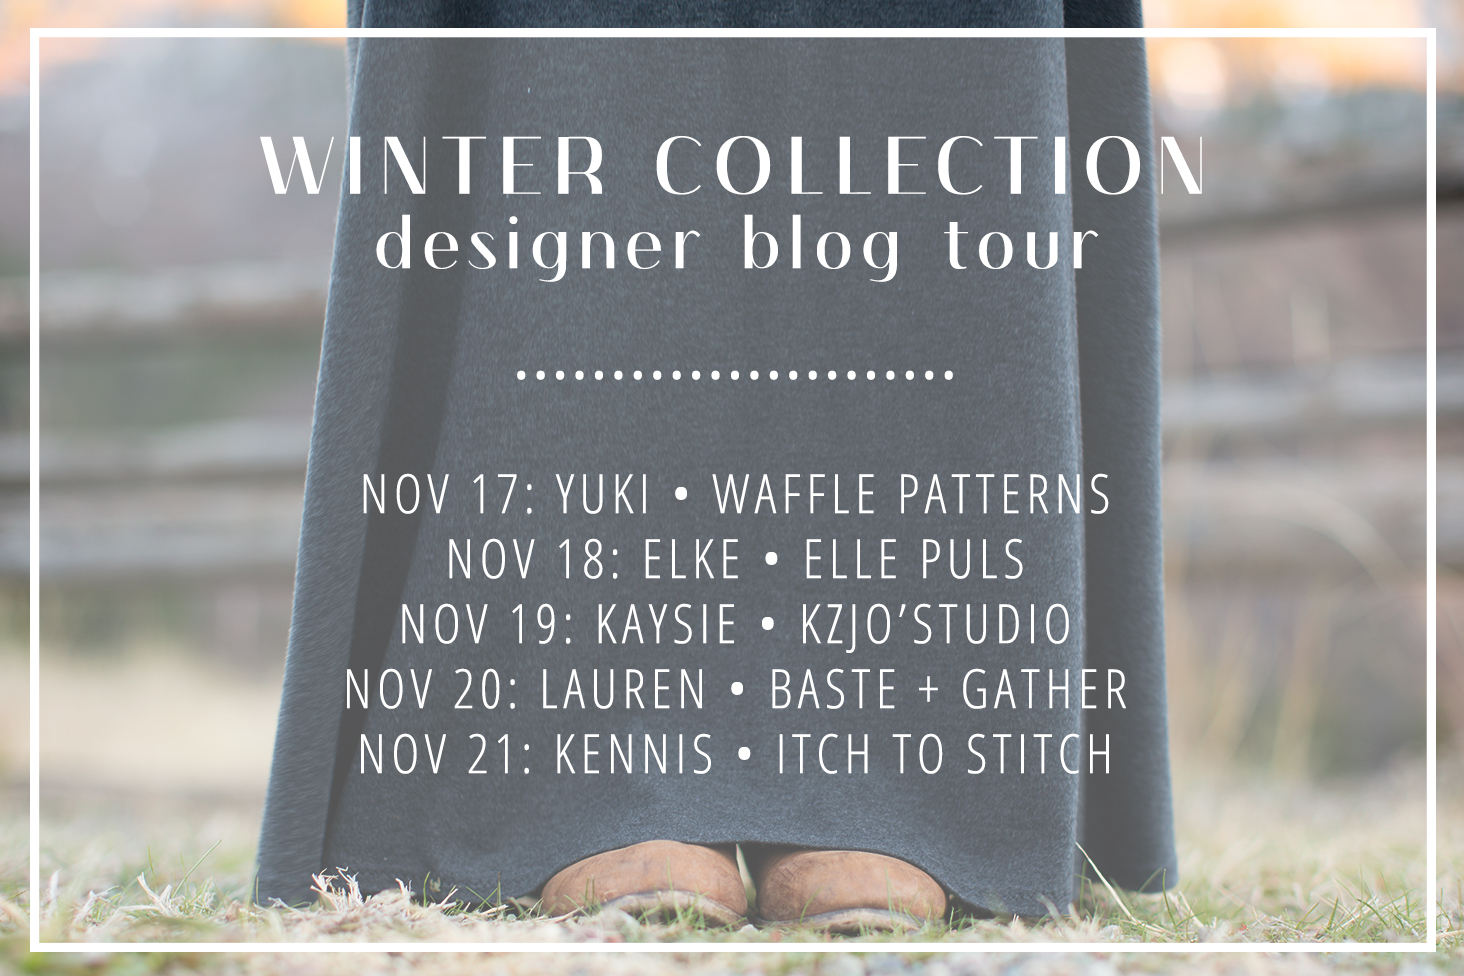 winter-collection-blog-tour@2x